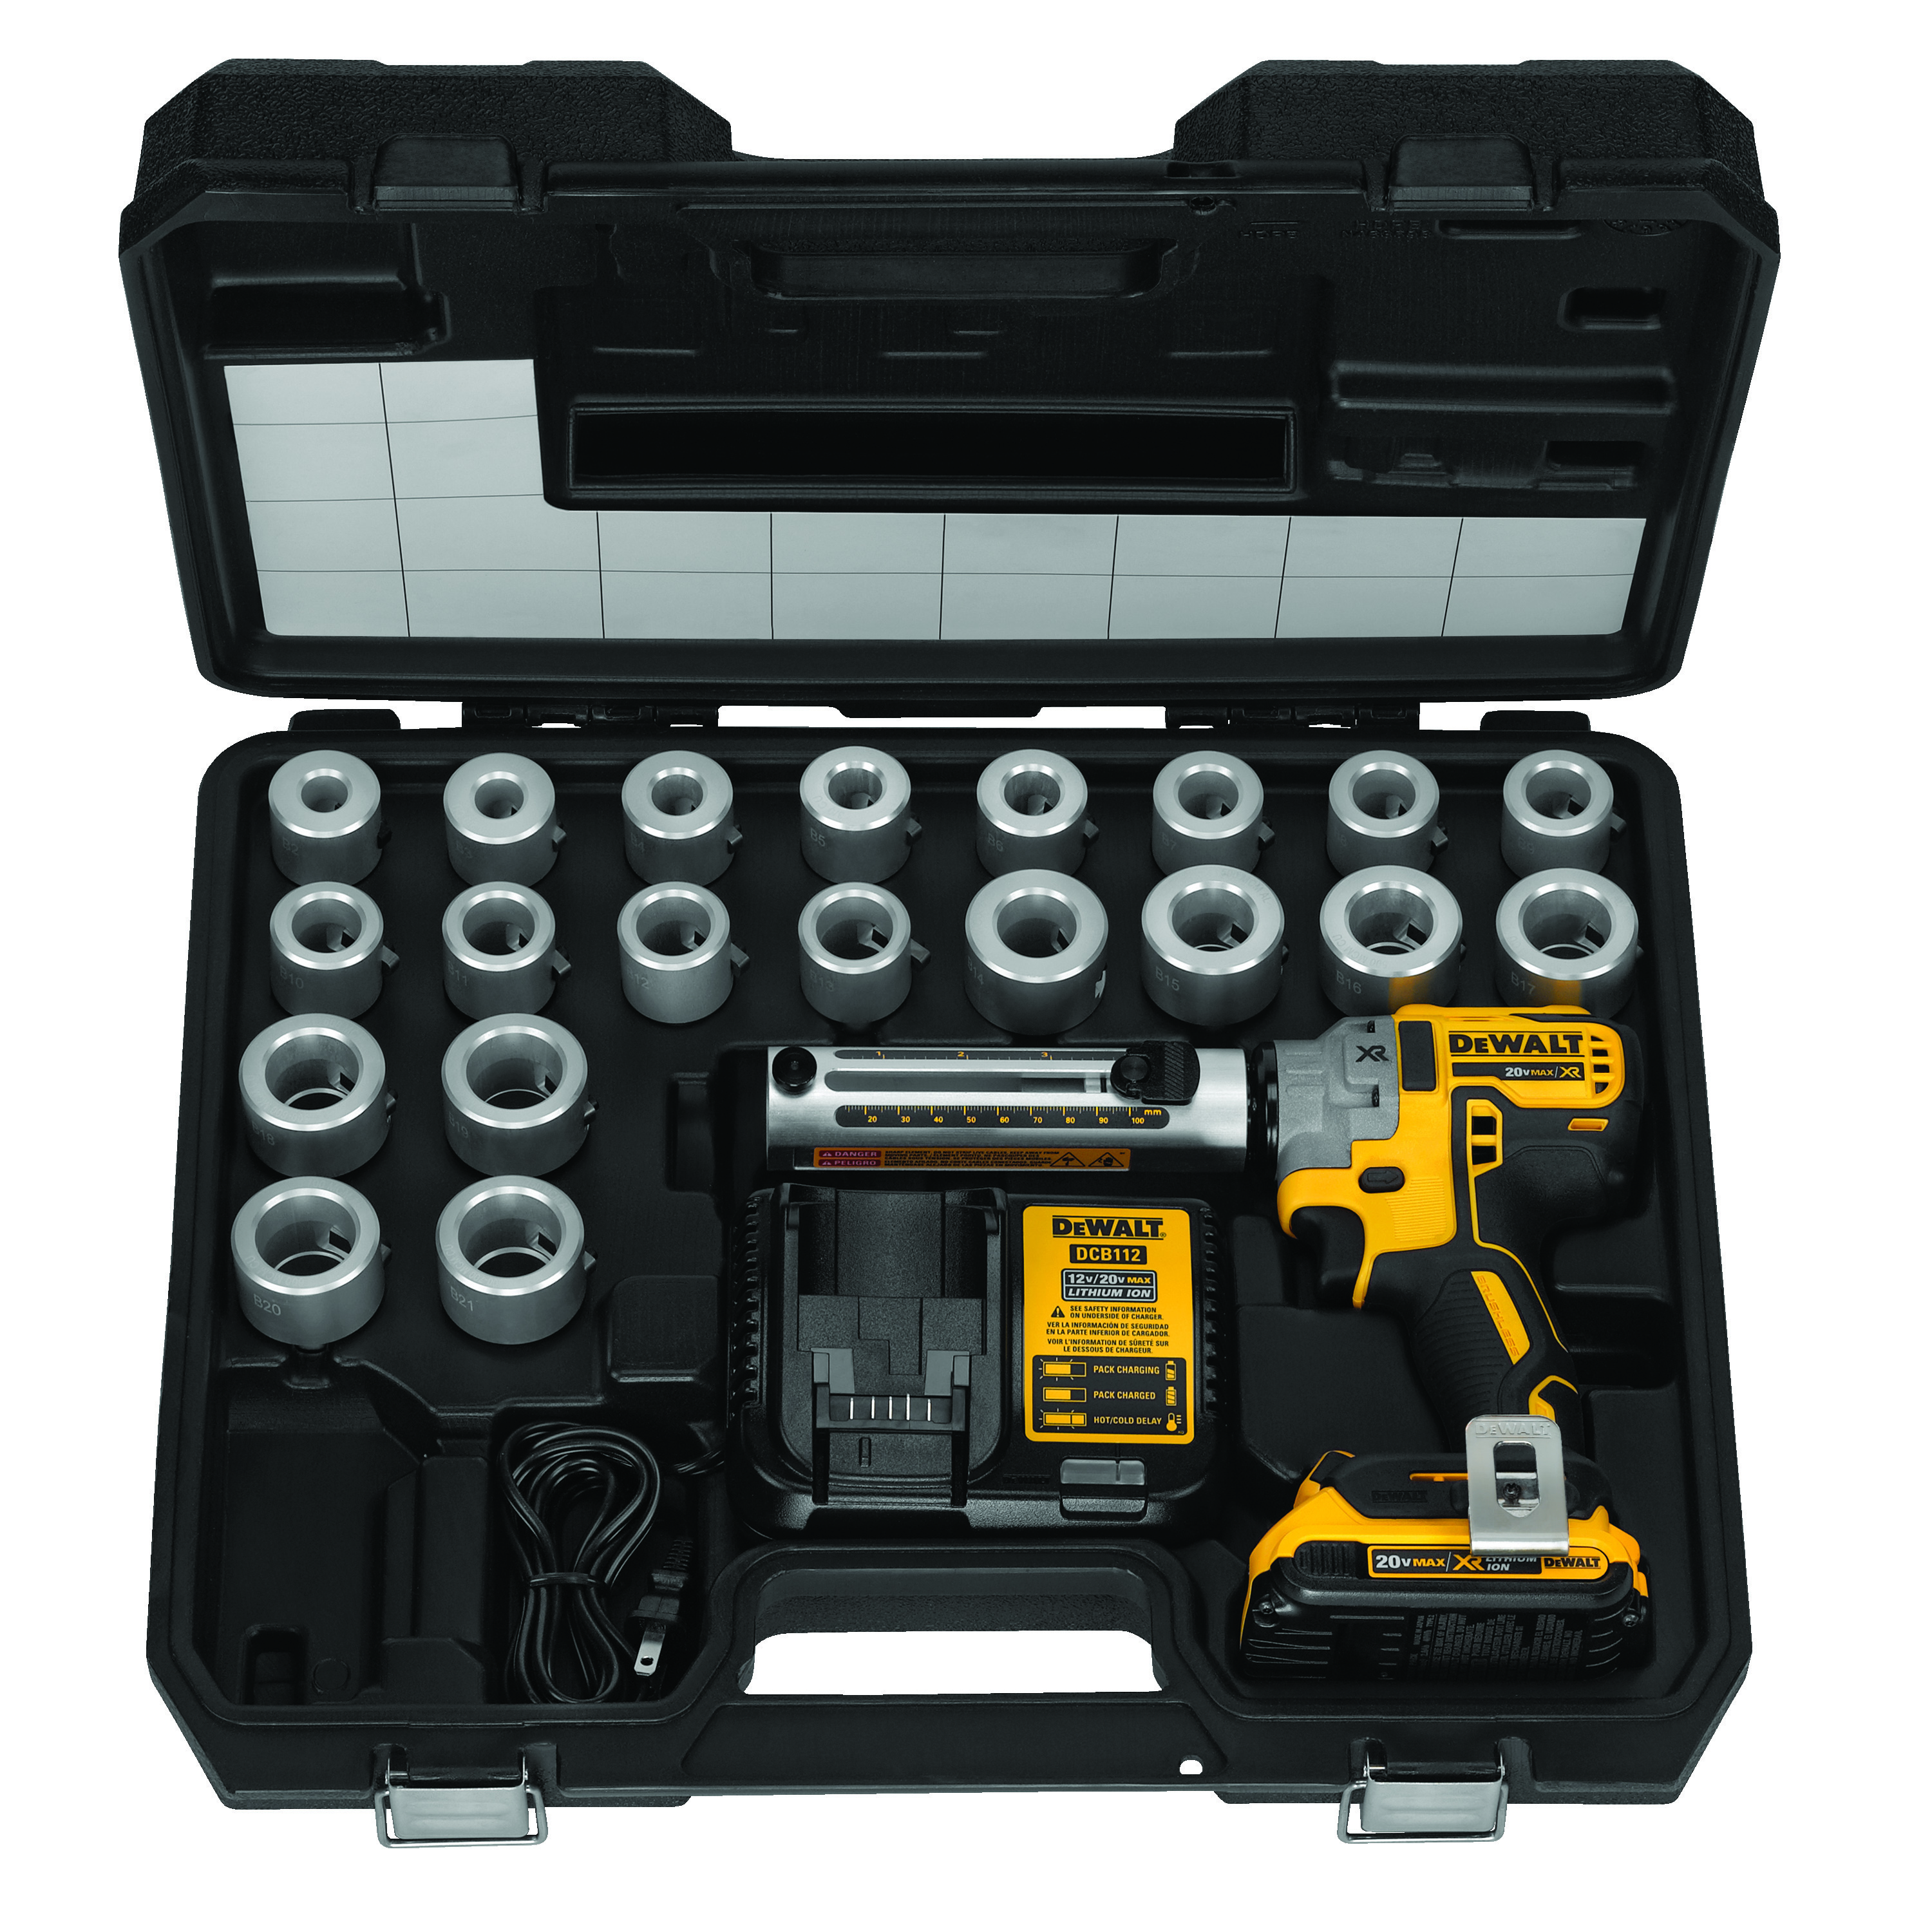 DeWALT® DCE151TD1 Cordless Cable Stripper Kit, 5 AWG to 900 kcmil Aluminum/6 AWG to 750 kcmil Copper Cutting, 20 VDC, 2 Ah Lithium-Ion Battery